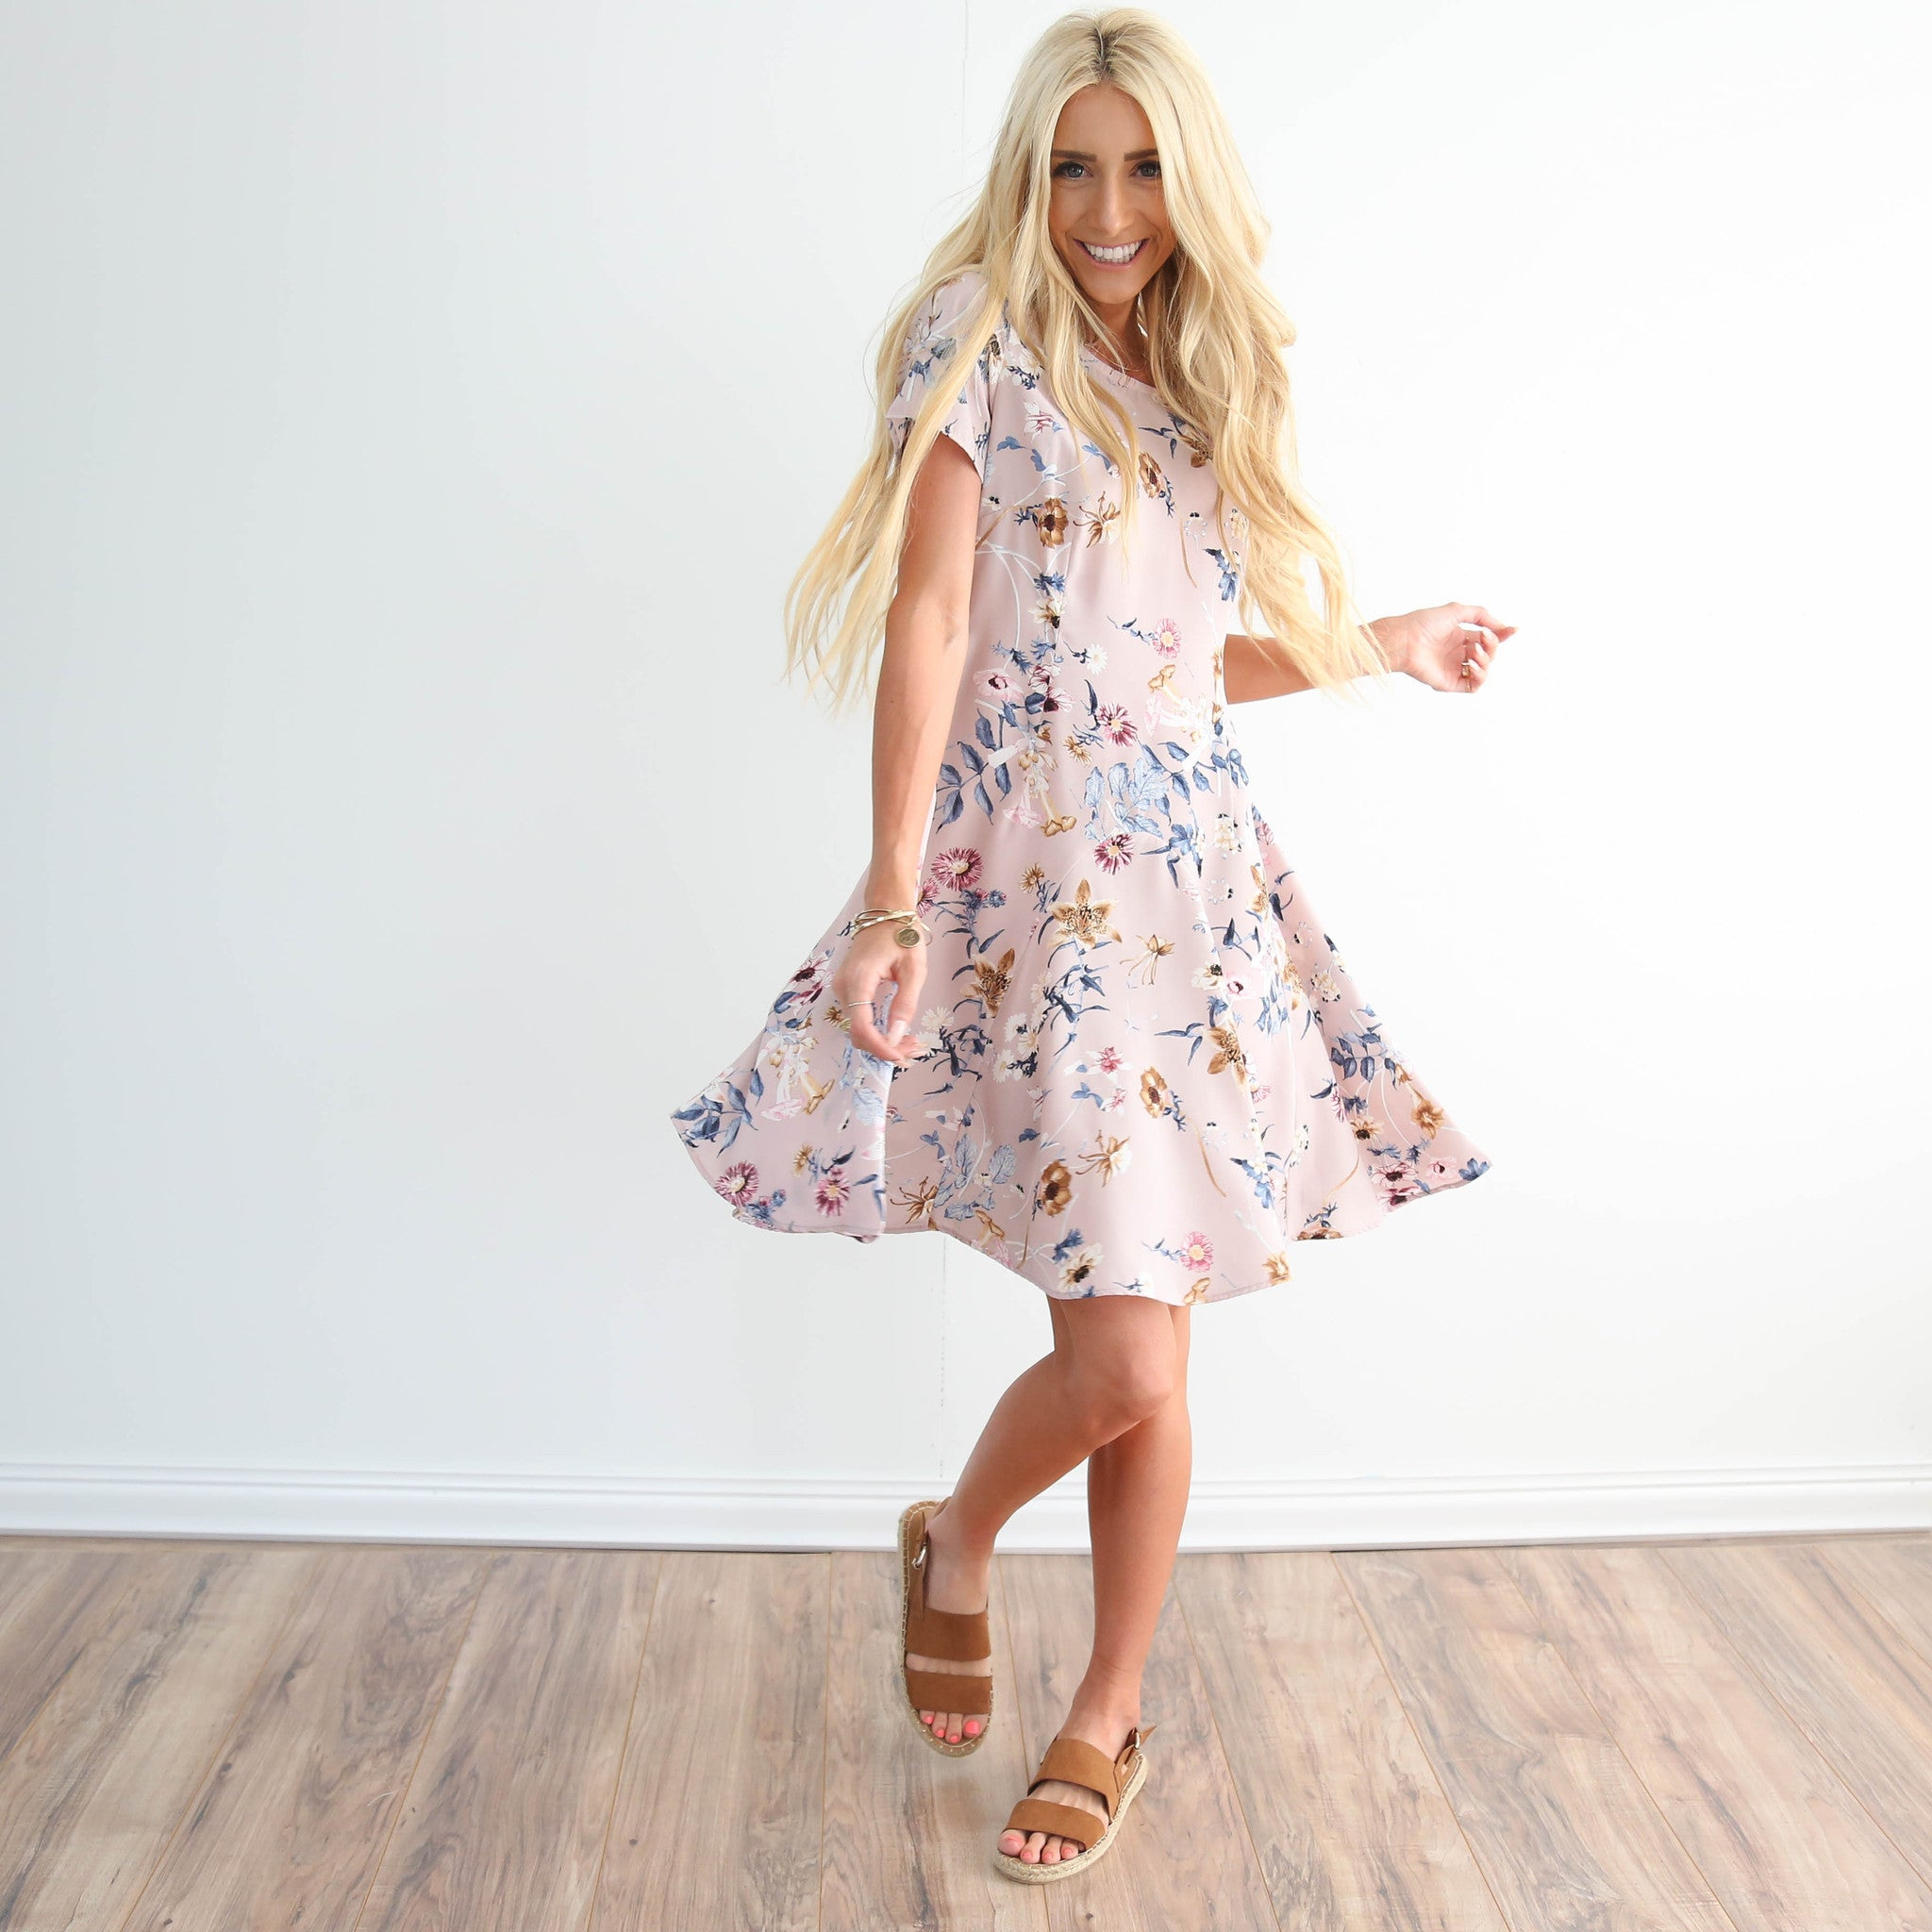 S & Co. Delilah Spring Dress